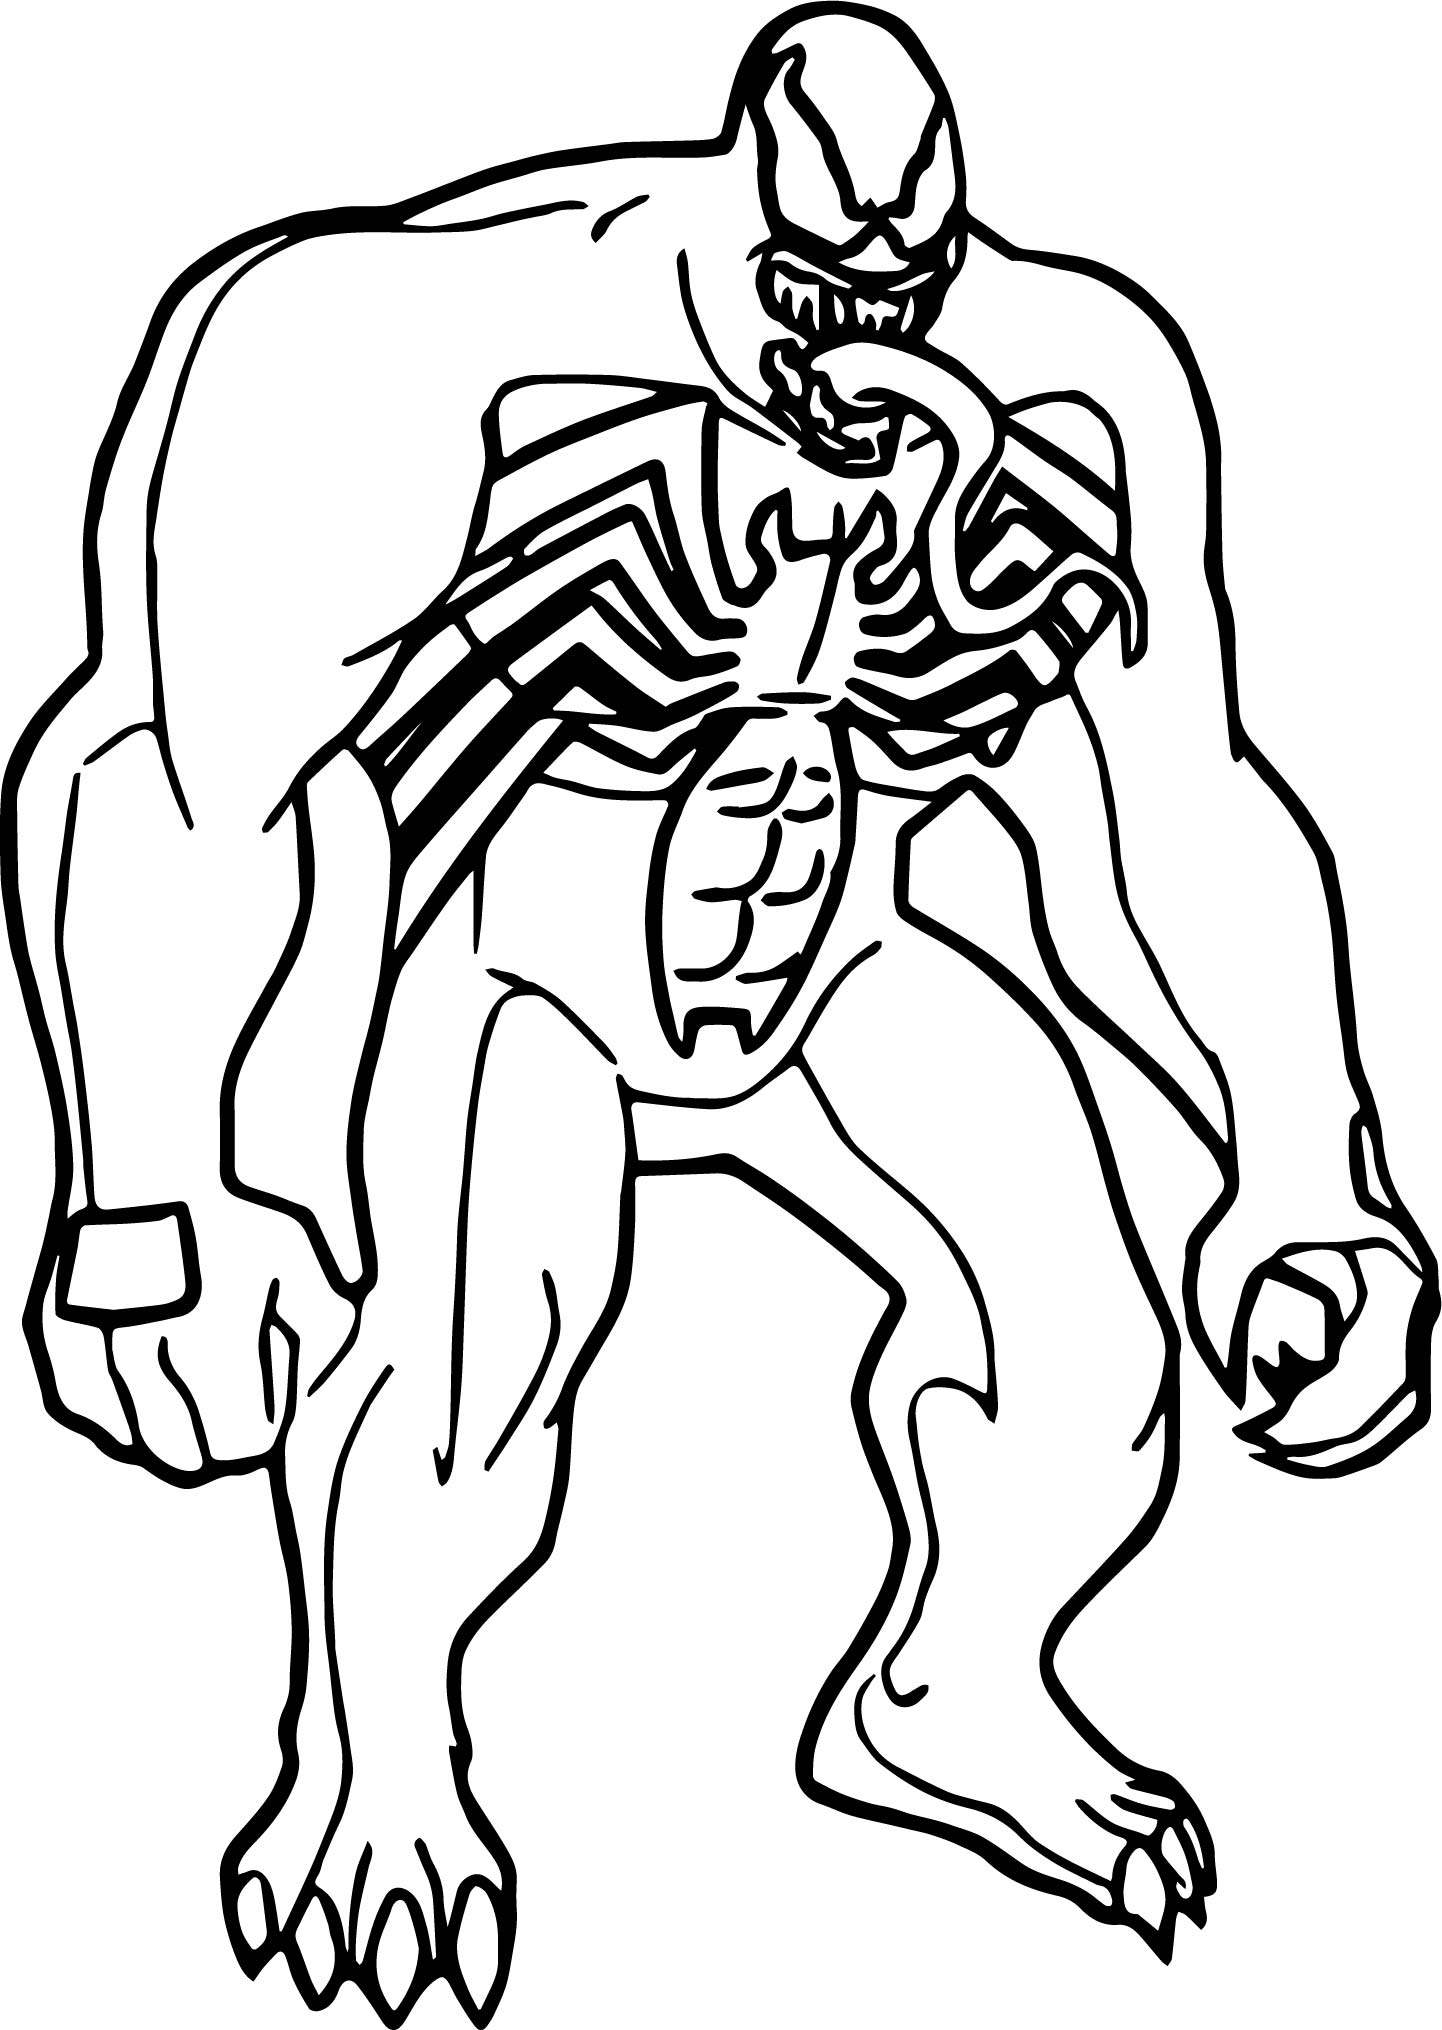 venom face coloring pages how to draw venom easy step by step marvel characters venom face coloring pages